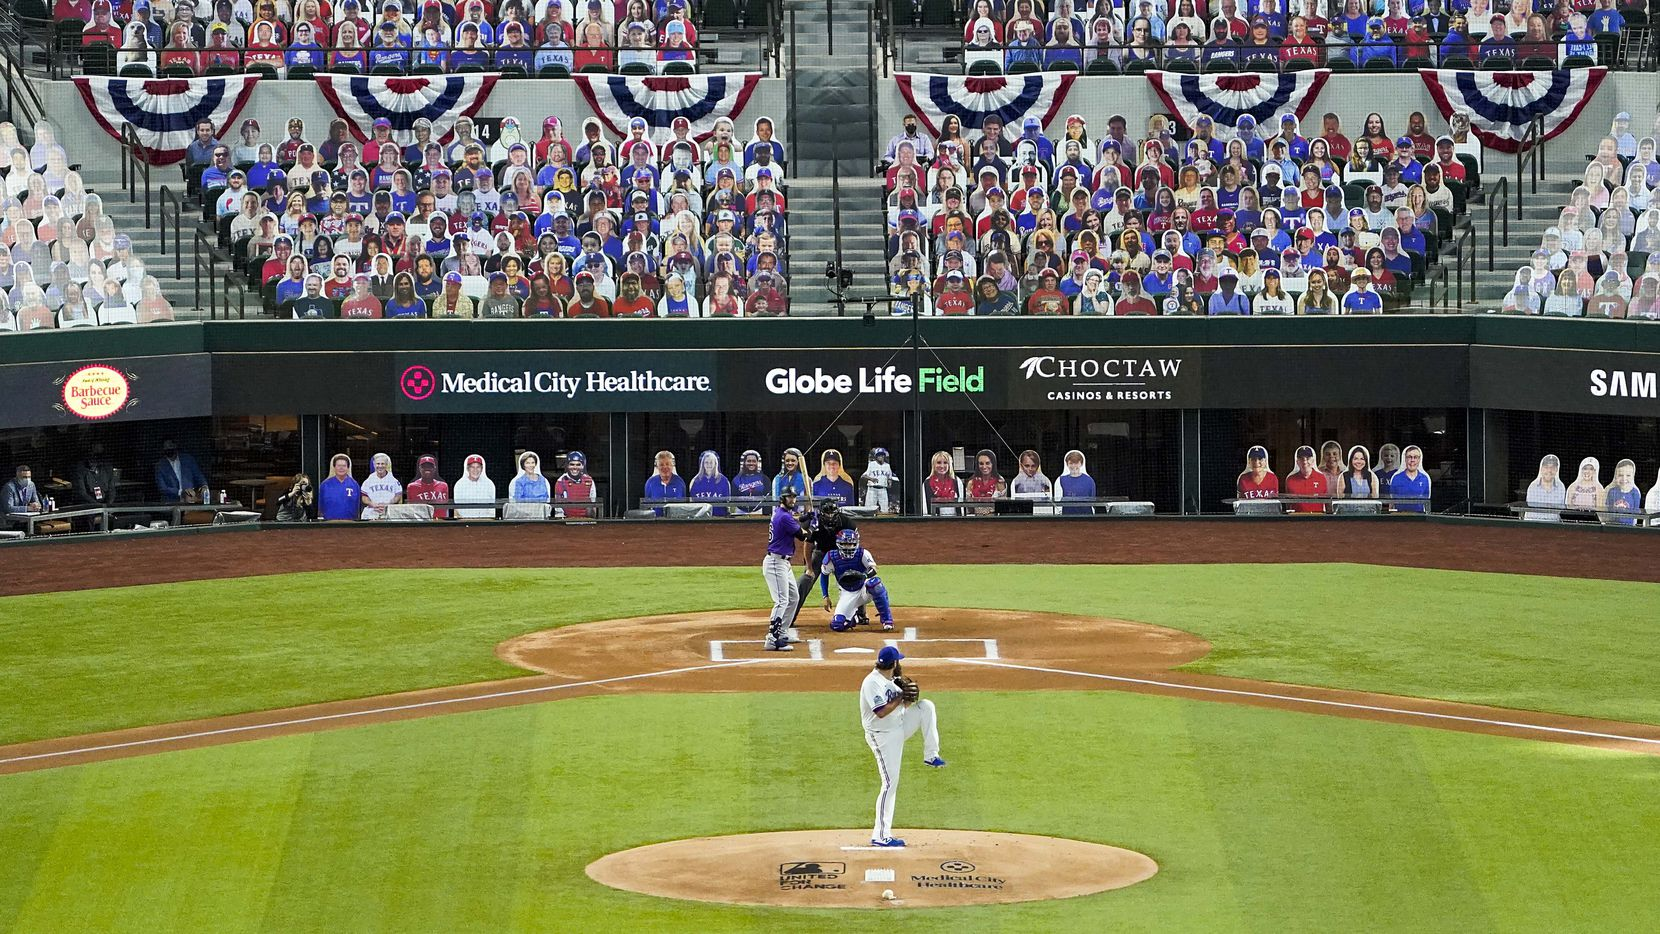 In front of a sea of cutout photos filling the empty seats, Texas Rangers pitcher Lance Lynn delivers a called strike to Colorado Rockies center fielder David Dahl for the first pitch in the history of the new stadium on opening day at Globe Life Field on Friday, July 24, 2020.